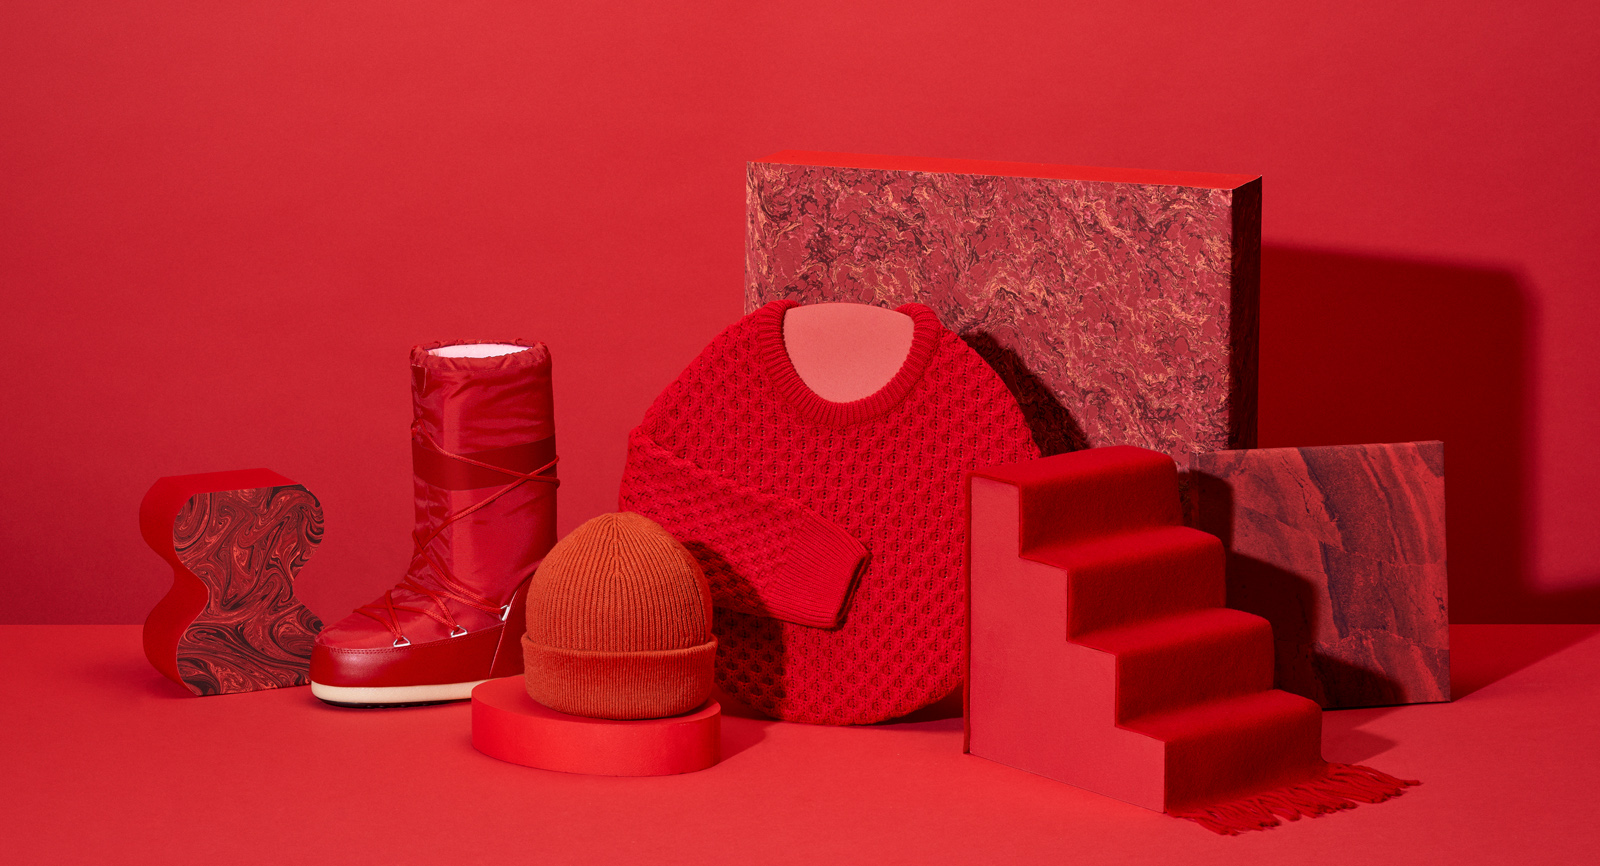 Zalando sale campaign image with winter gaments - sweater, boot, hat and scarf